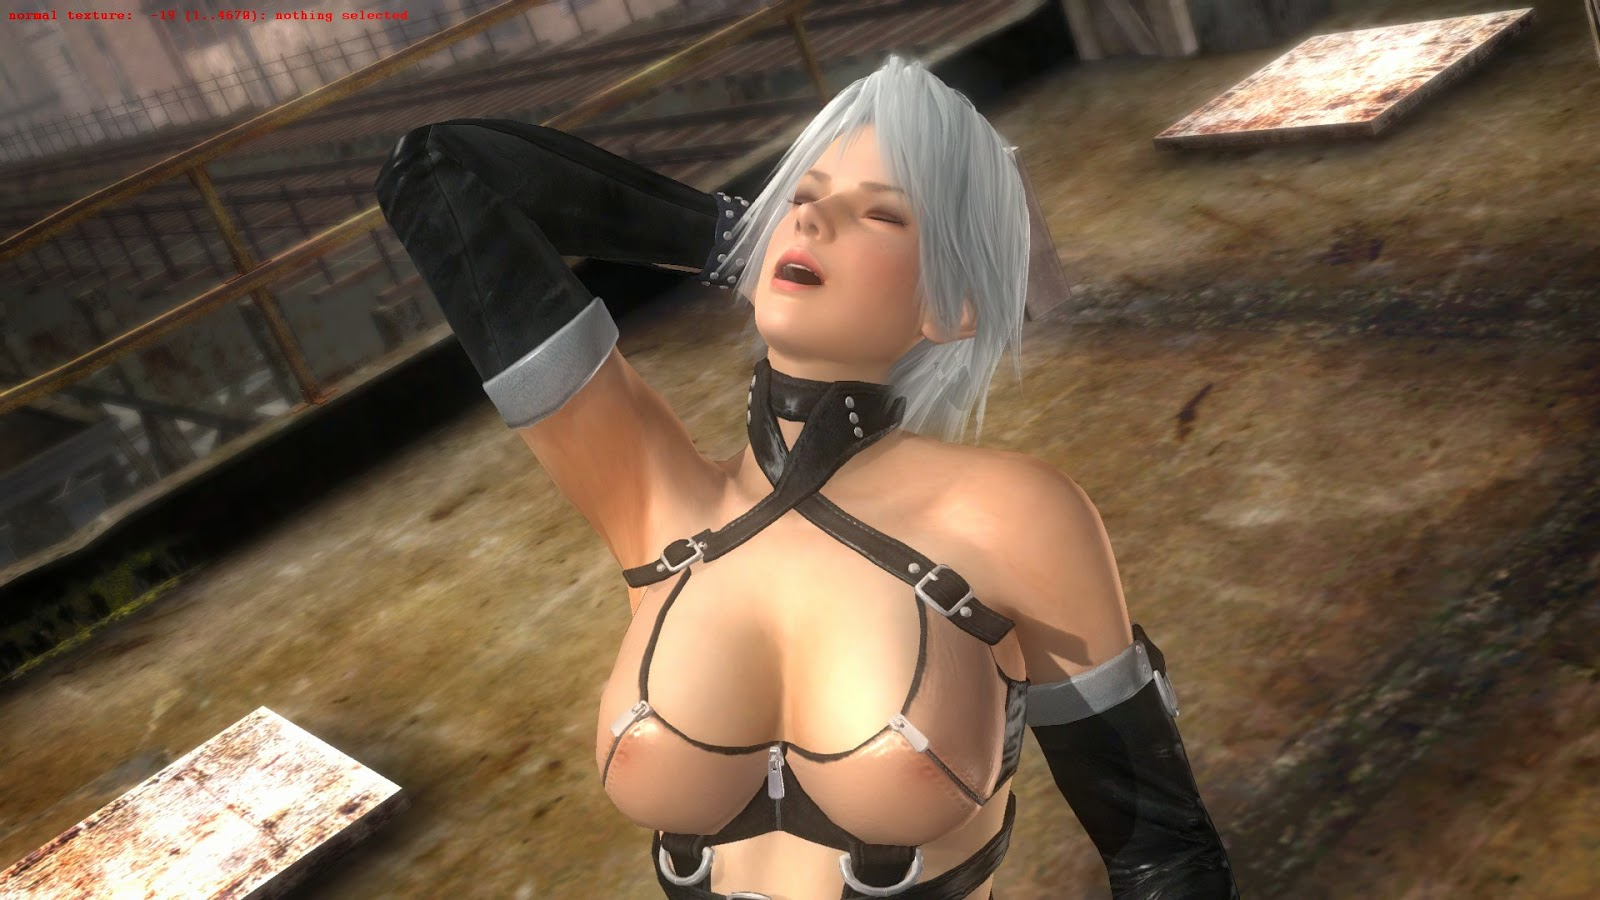 Doa 5 nude mod downloads ps sexual photos